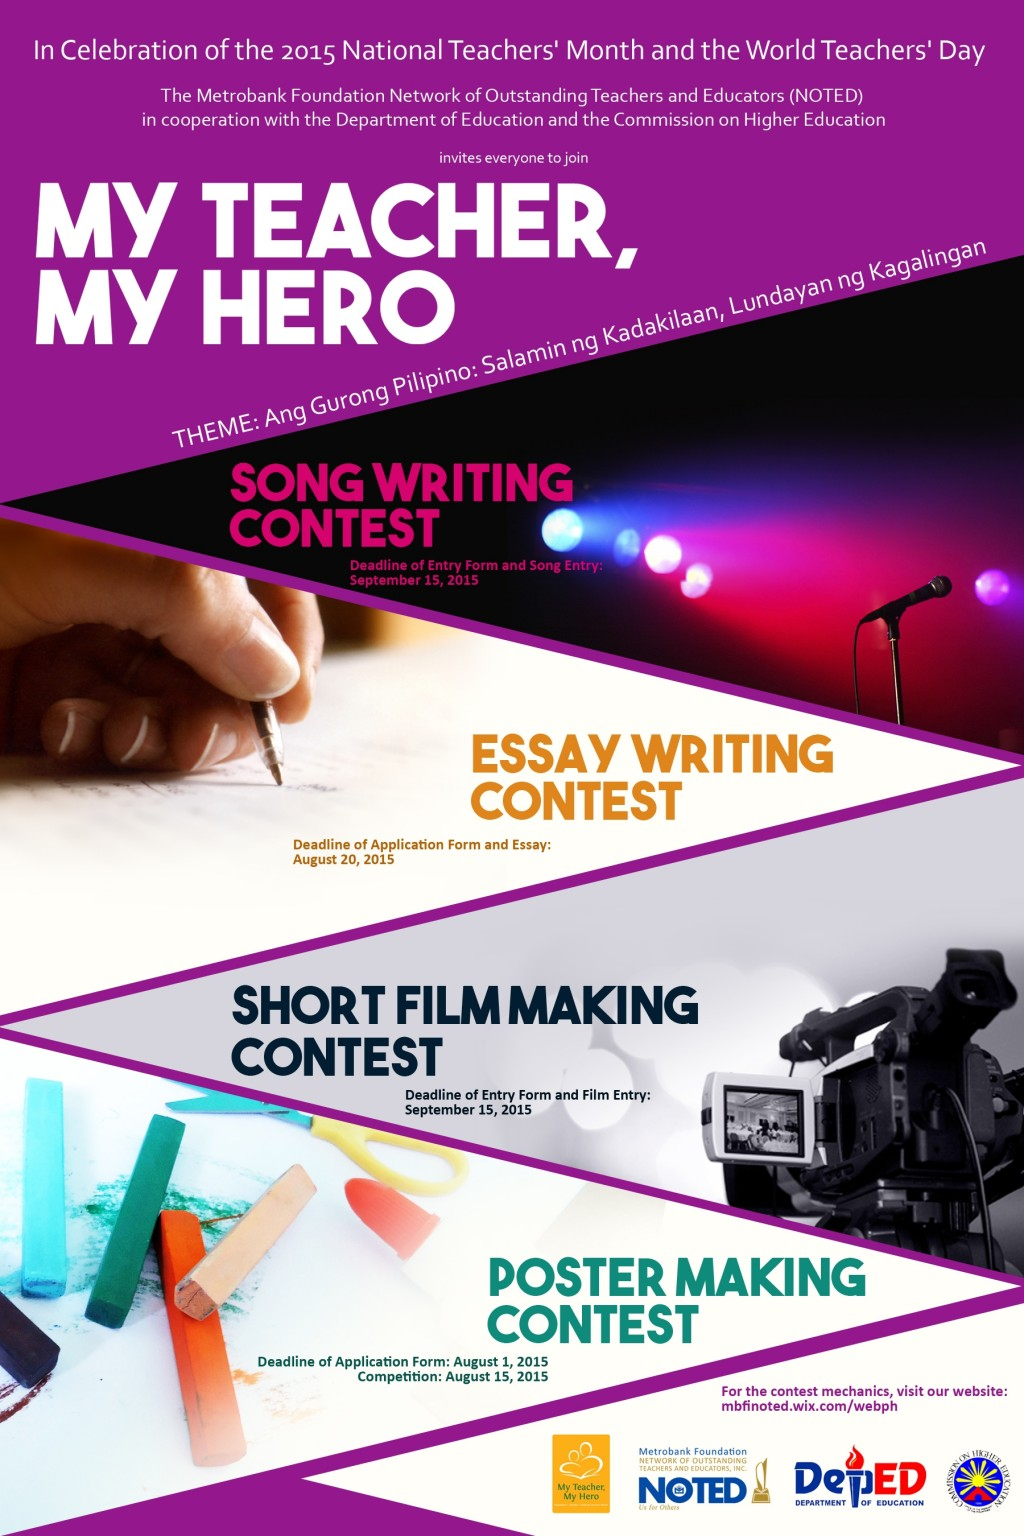 023 Essay Example Writing Contest 9bbb33 E6d36ee02b654f79801806f311facf4a Incredible Free Contests 2018 International Competitions For High School Students India Large